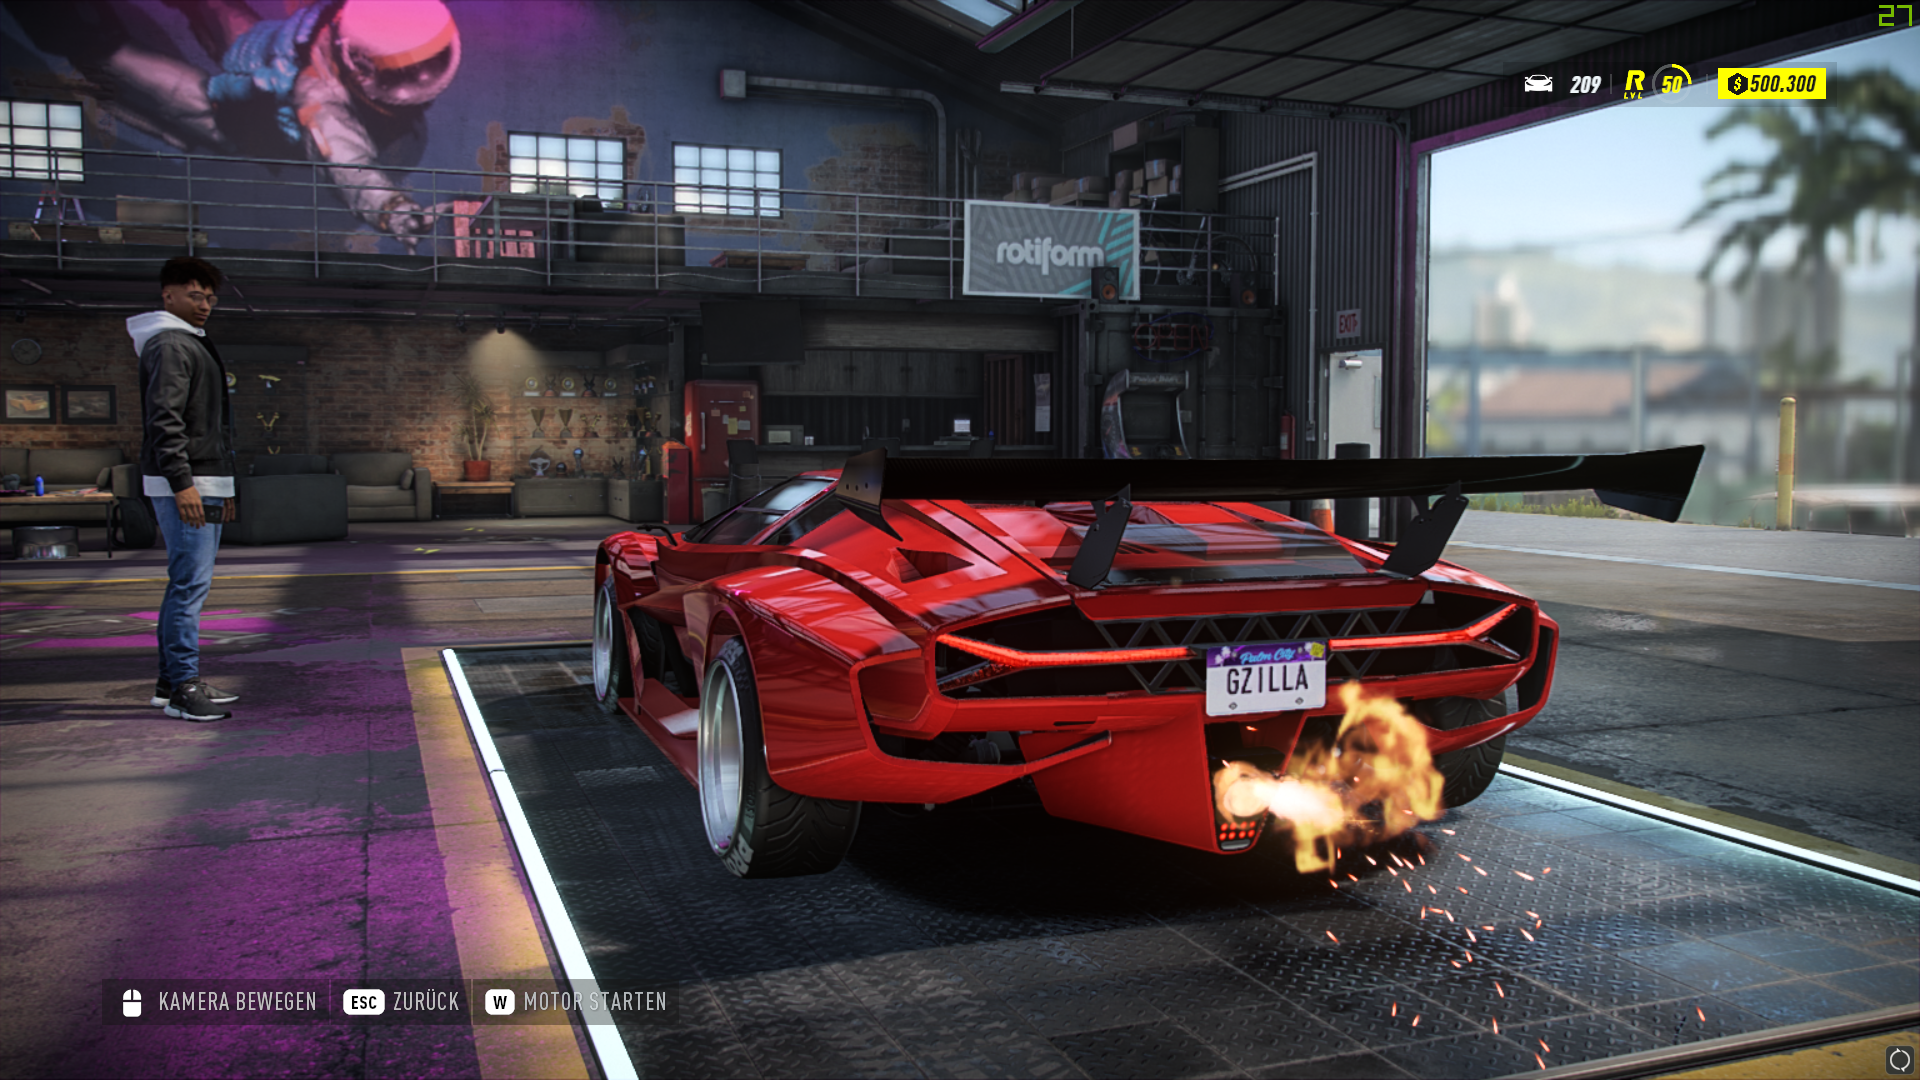 NFS - Need for Speed Heat - Lamborghini Countach